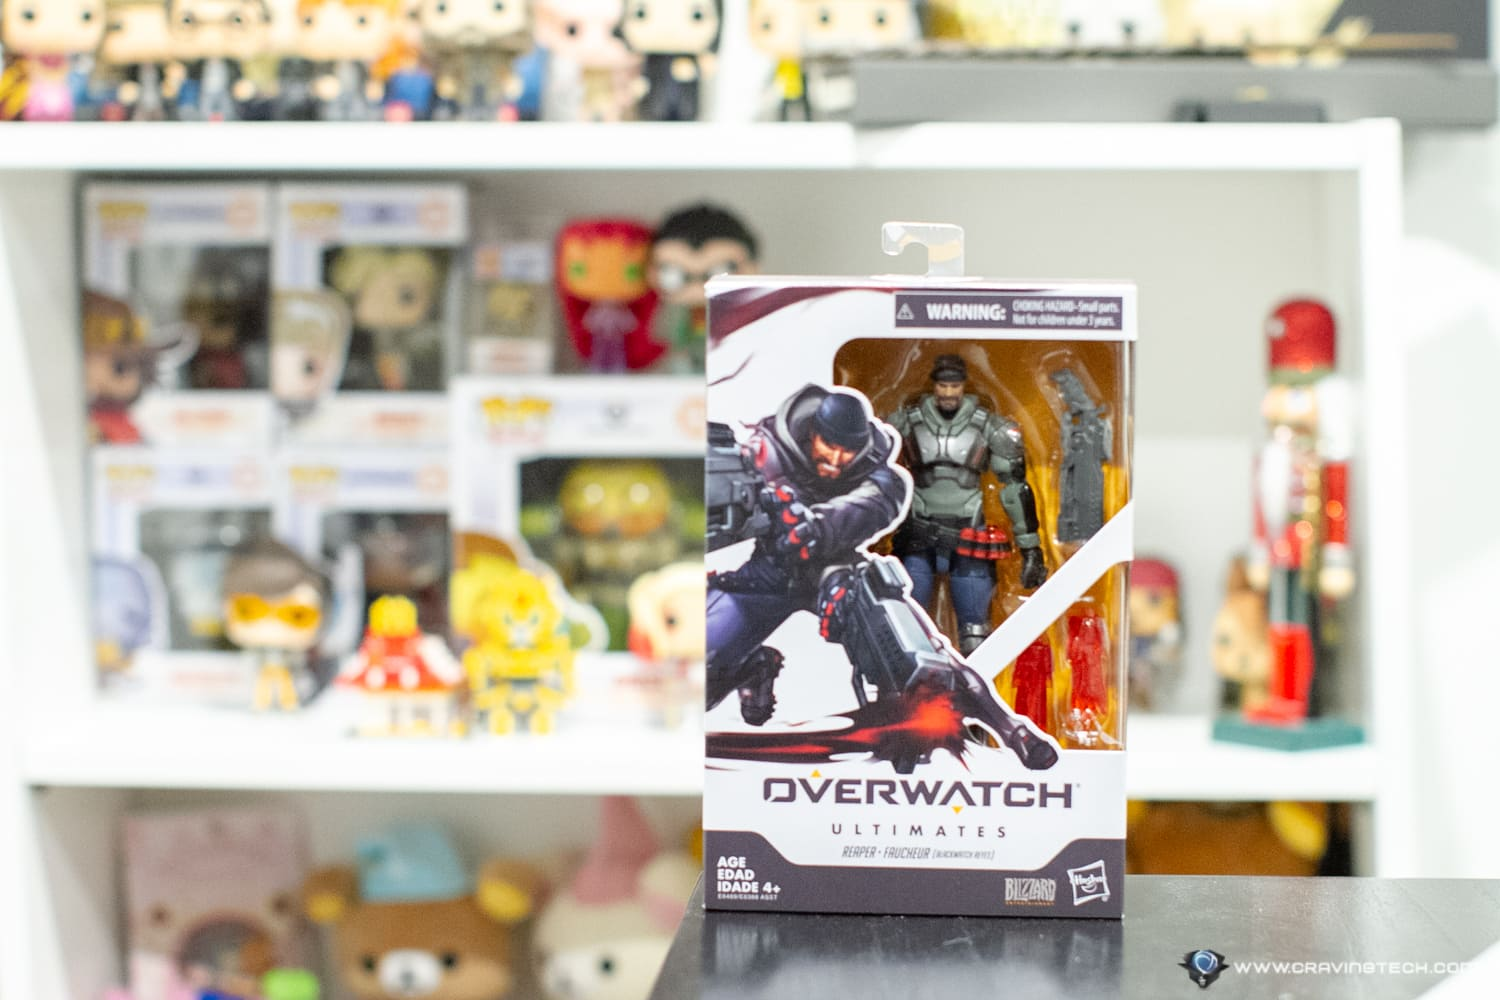 Overwatch Ultimates 6-inch Figurine completes your Overwatch Funko POP! Collection